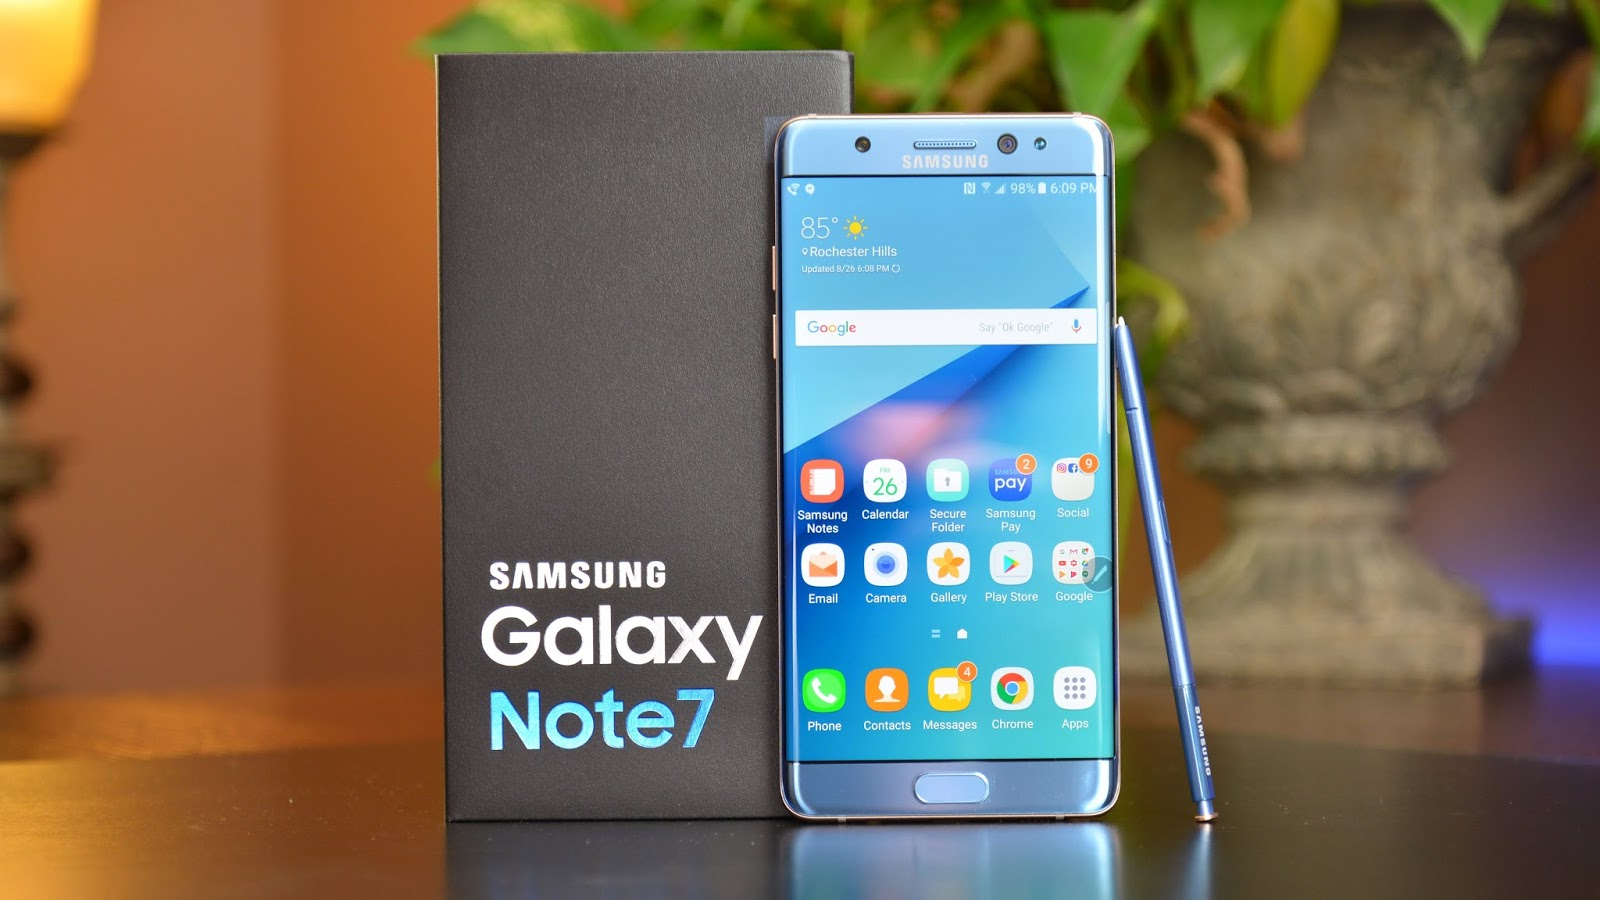 Samsung Galaxy Note 7 user manual,Samsung Galaxy Note 7 user guide manual,Samsung Galaxy Note 7 user manual pdf‎,Samsung Galaxy Note 7 user manual guide,Samsung Galaxy Note 7 owners manuals online,Samsung Galaxy Note 7 user guides, User Guide Manual,User Manual,User Manual Guide,User Manual PDF‎,